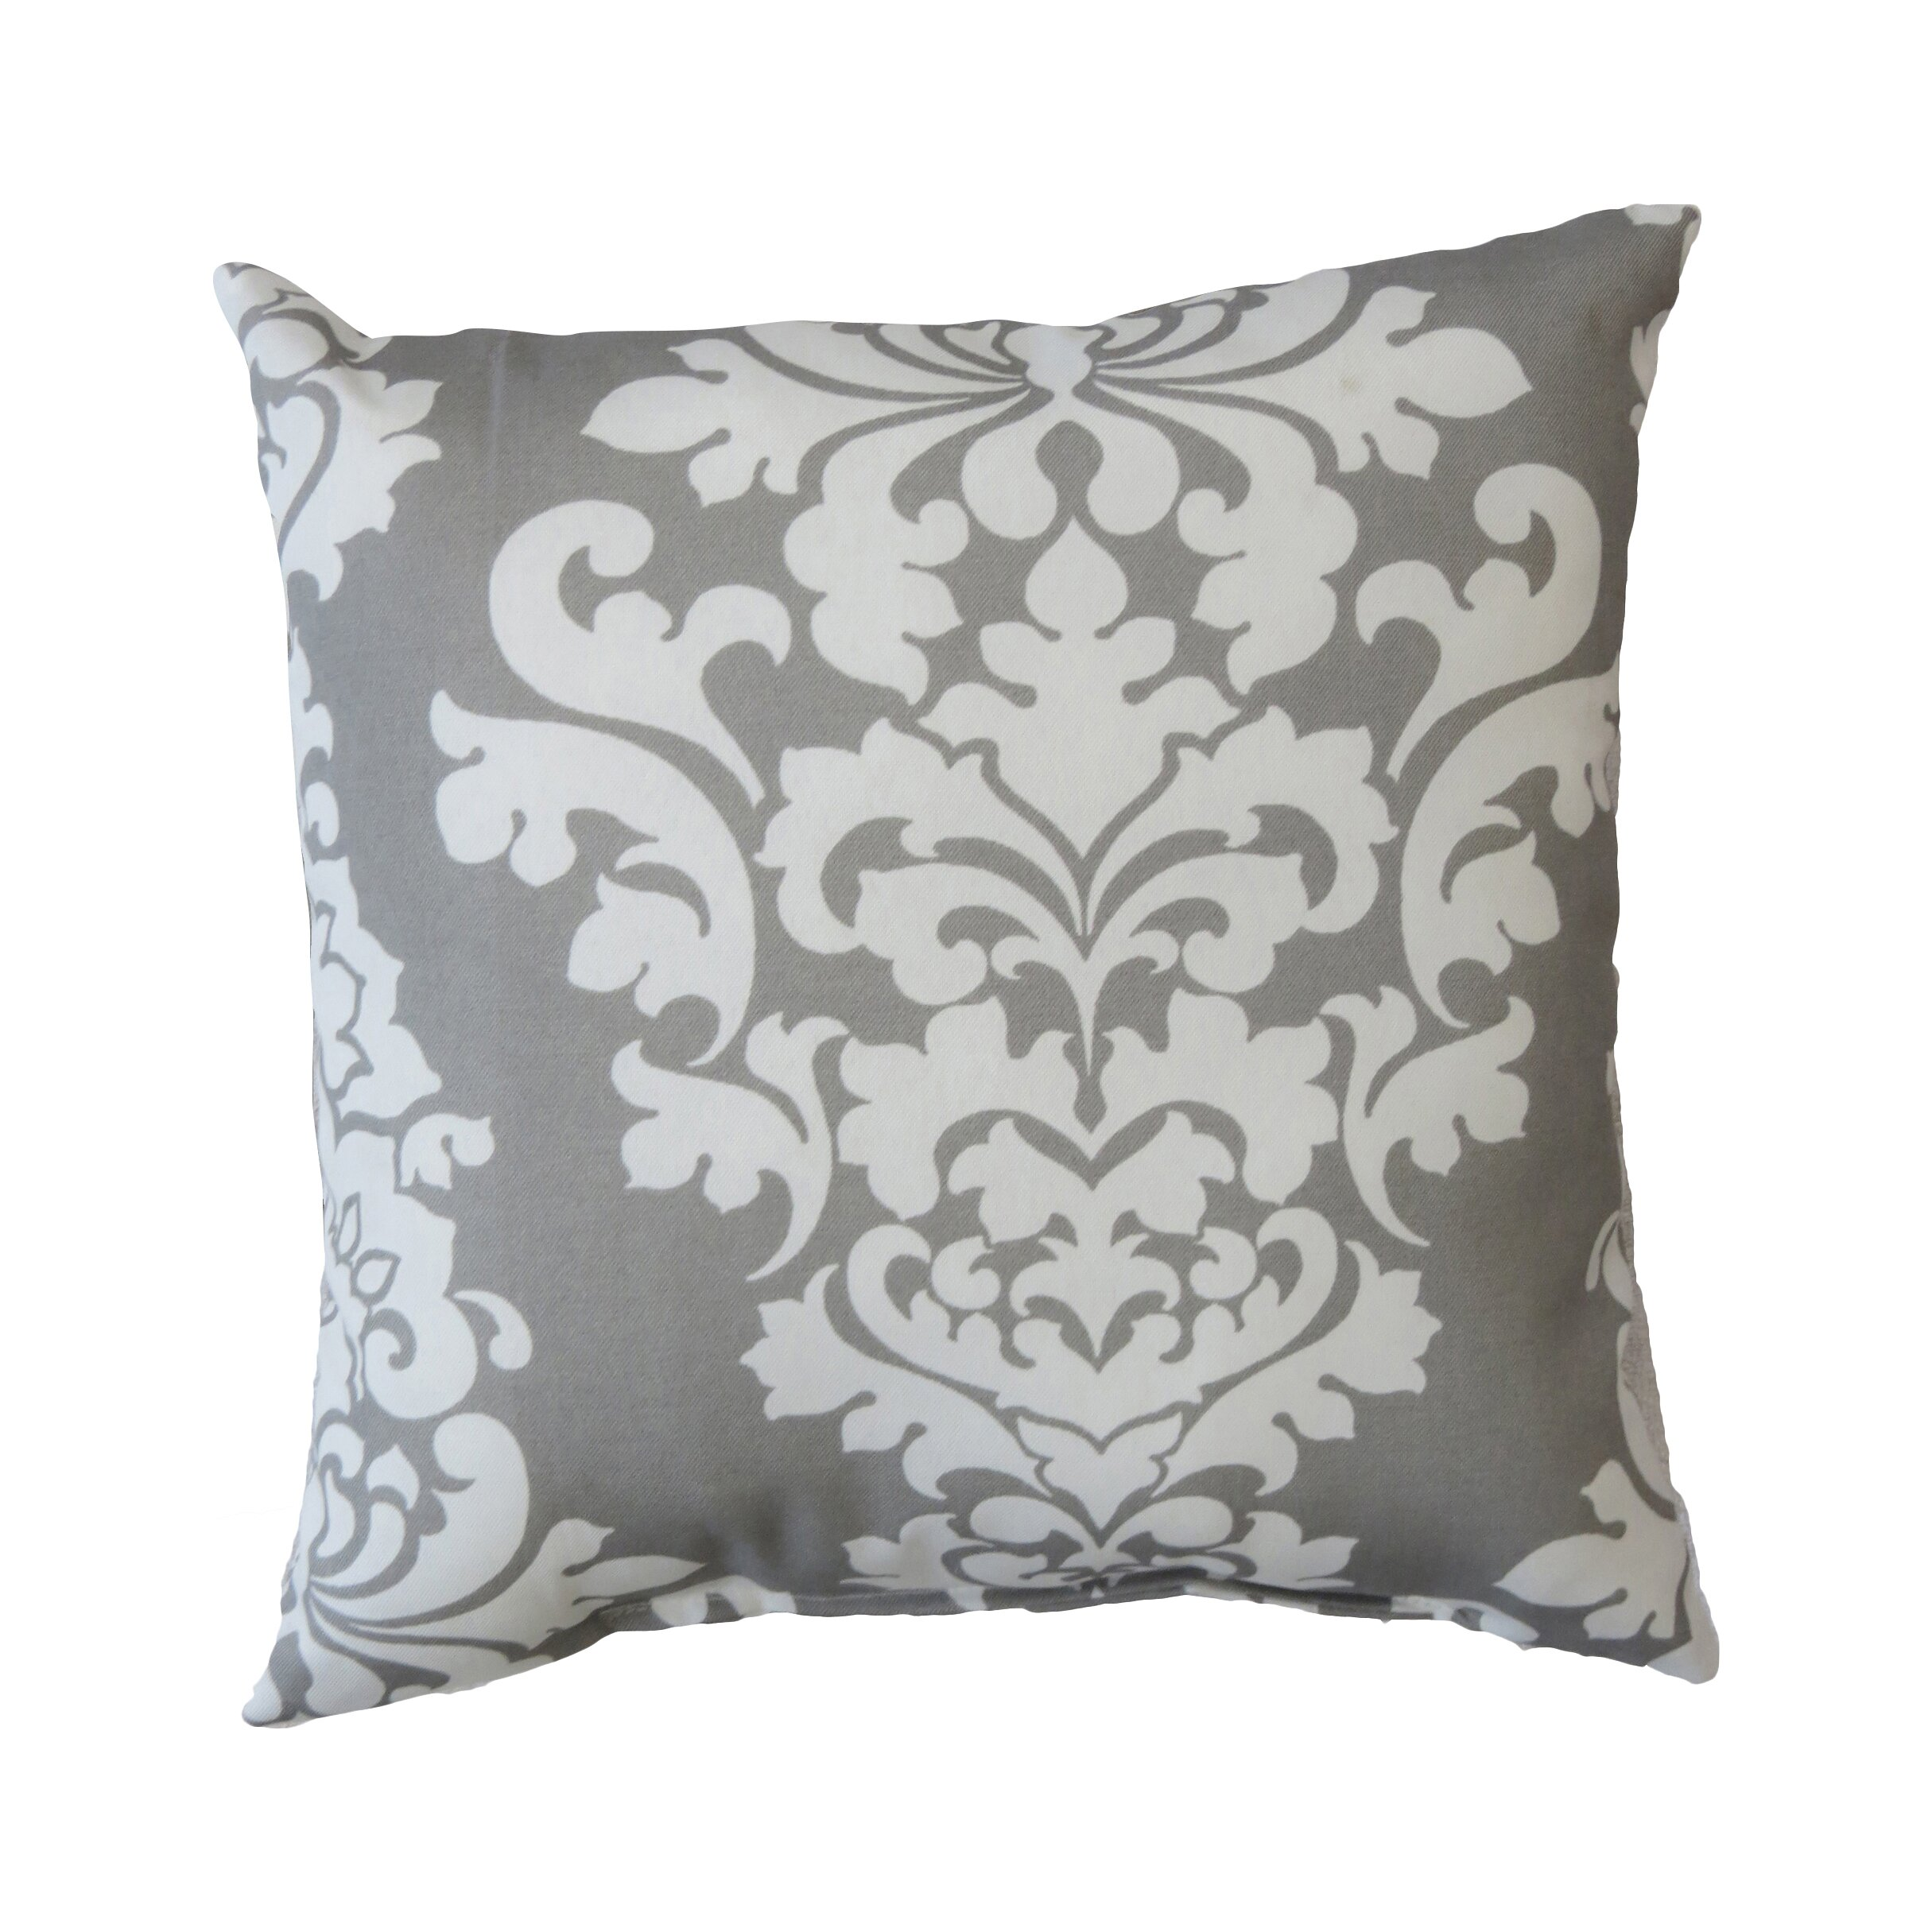 Throw Pillows In Abuja : Fox Hill Trading Premiere Home Indoor/Outdoor Throw Pillow & Reviews Wayfair